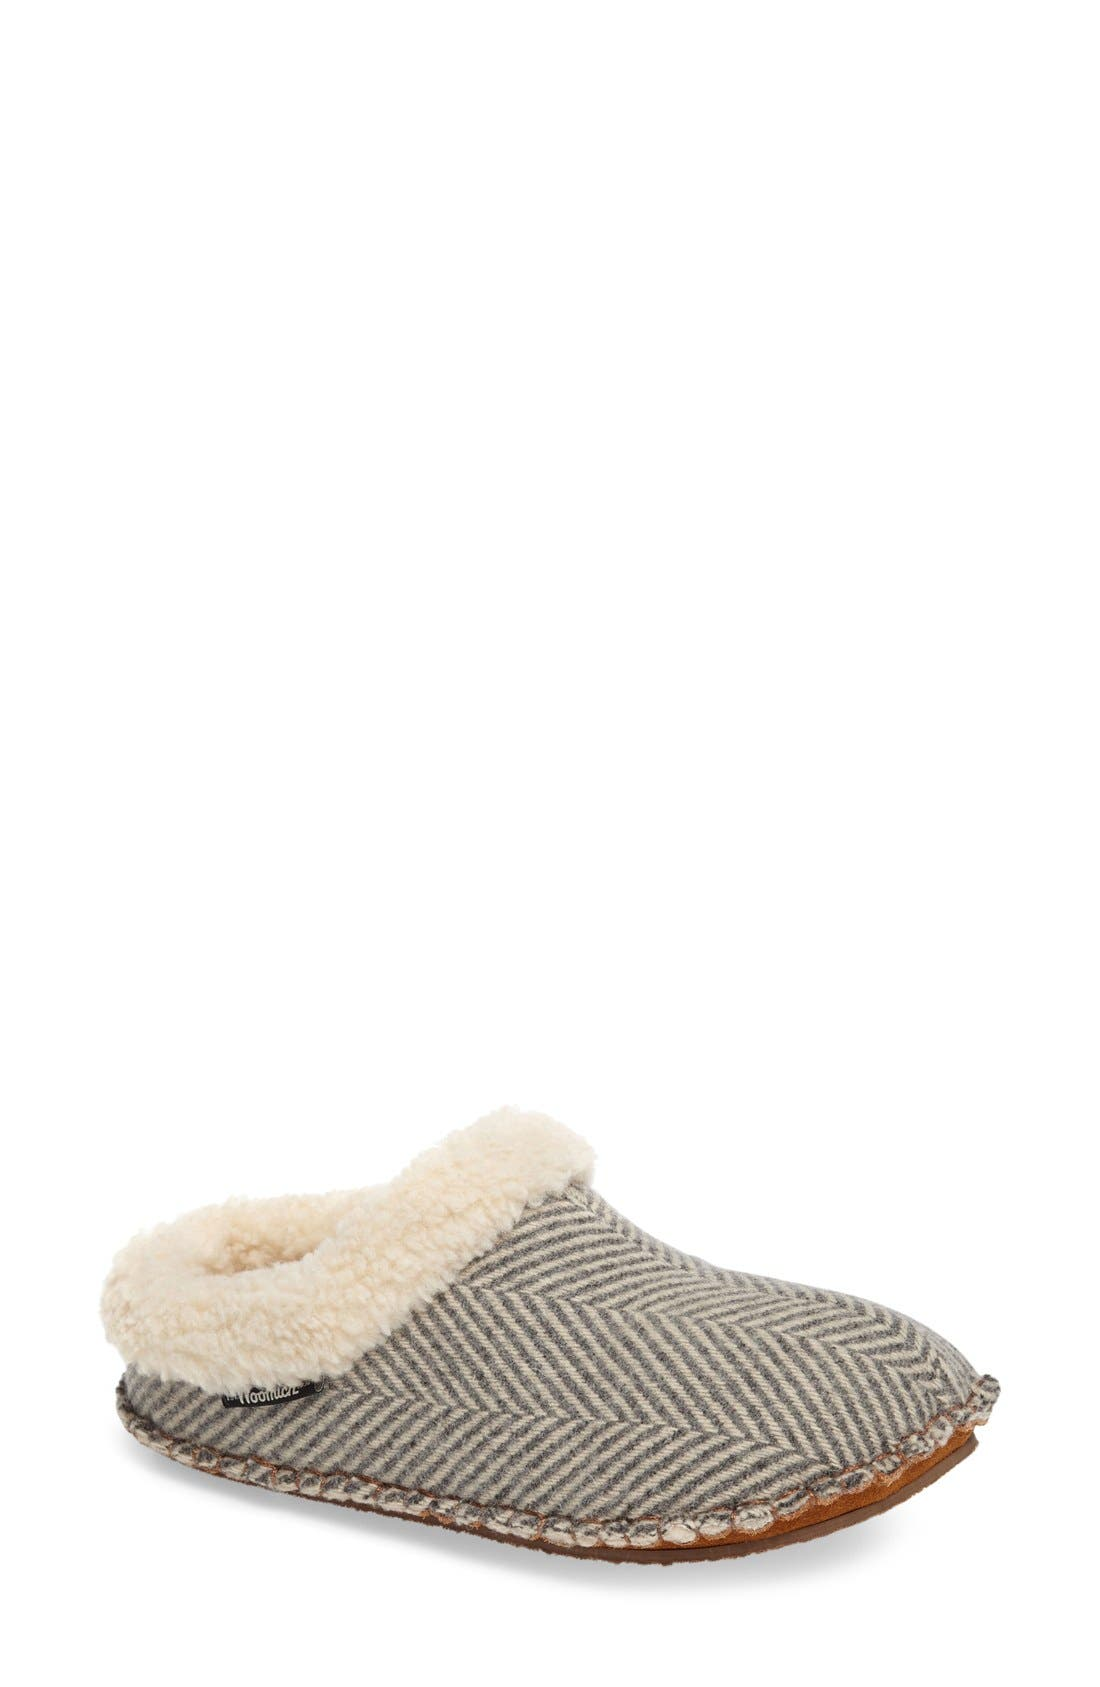 Lodge Slipper,                         Main,                         color, Herringbone Wool